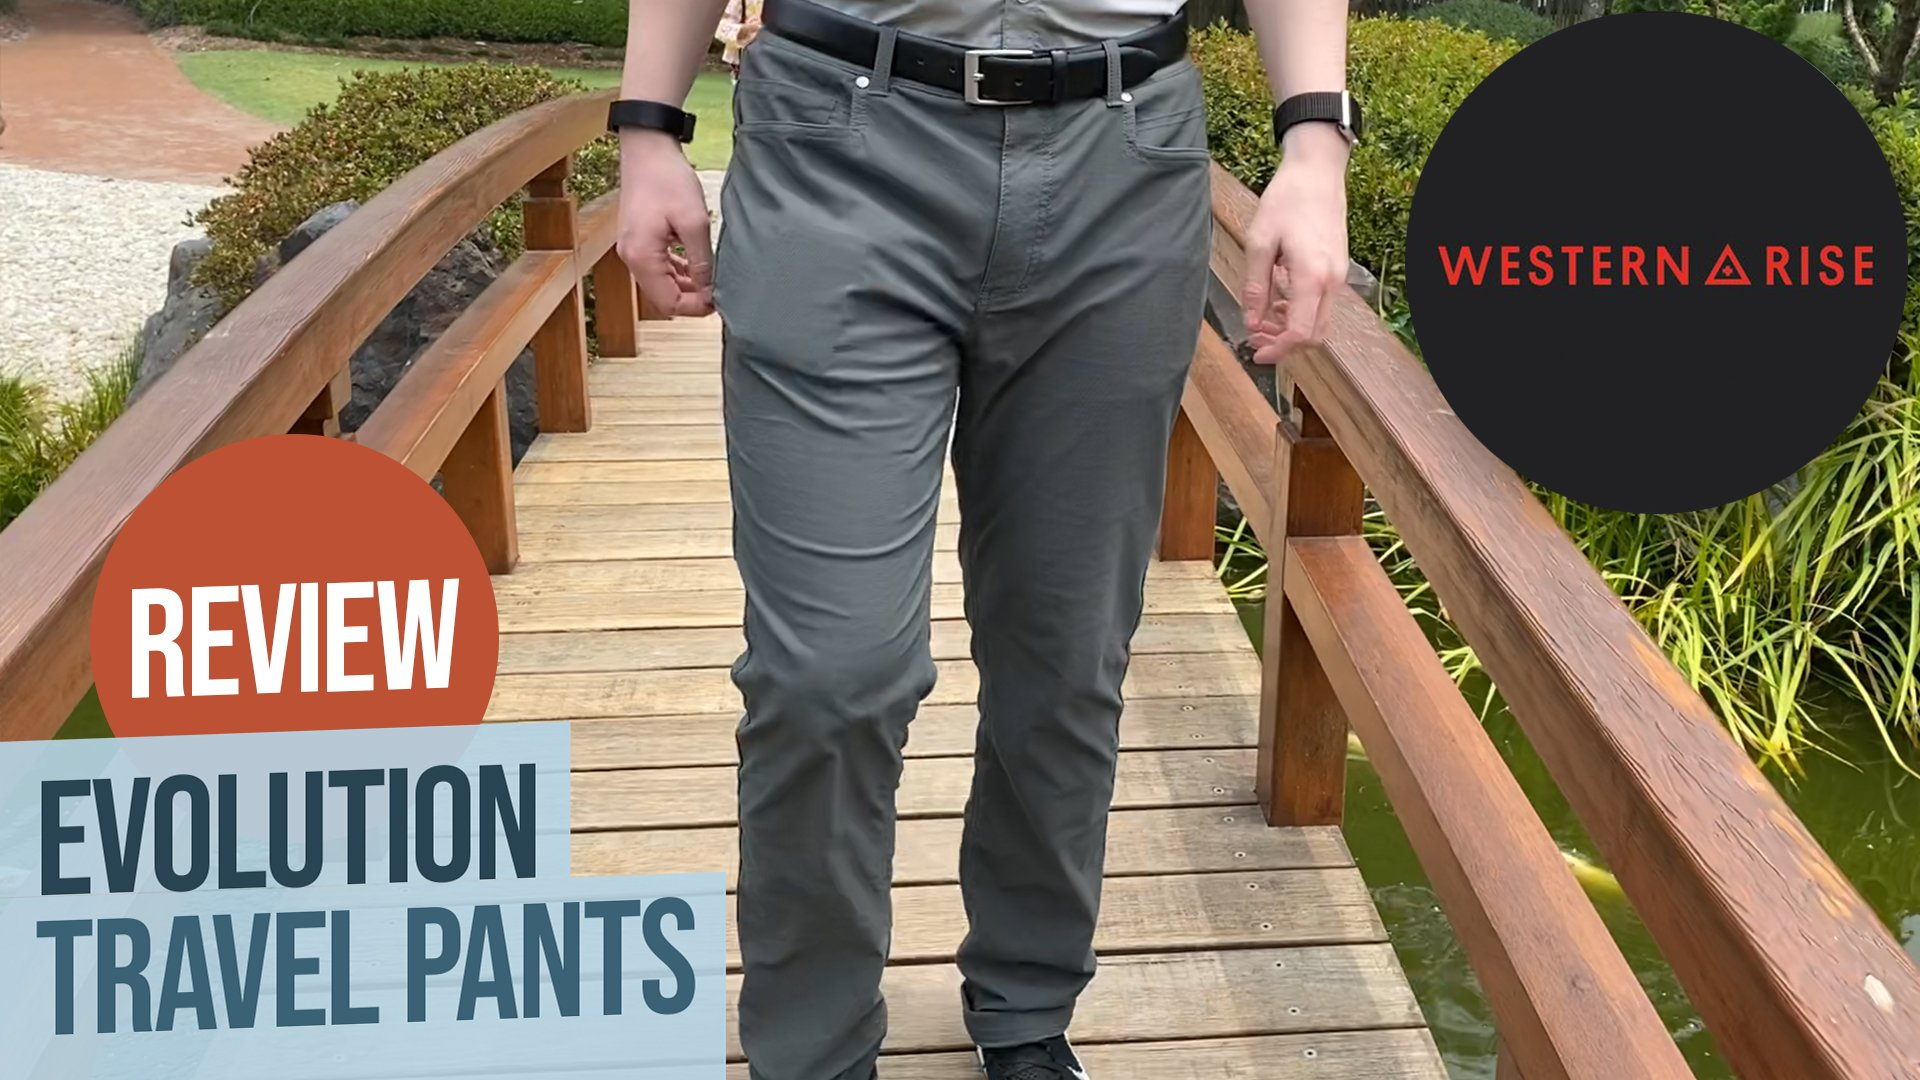 Western Rise Evolution Pants Review